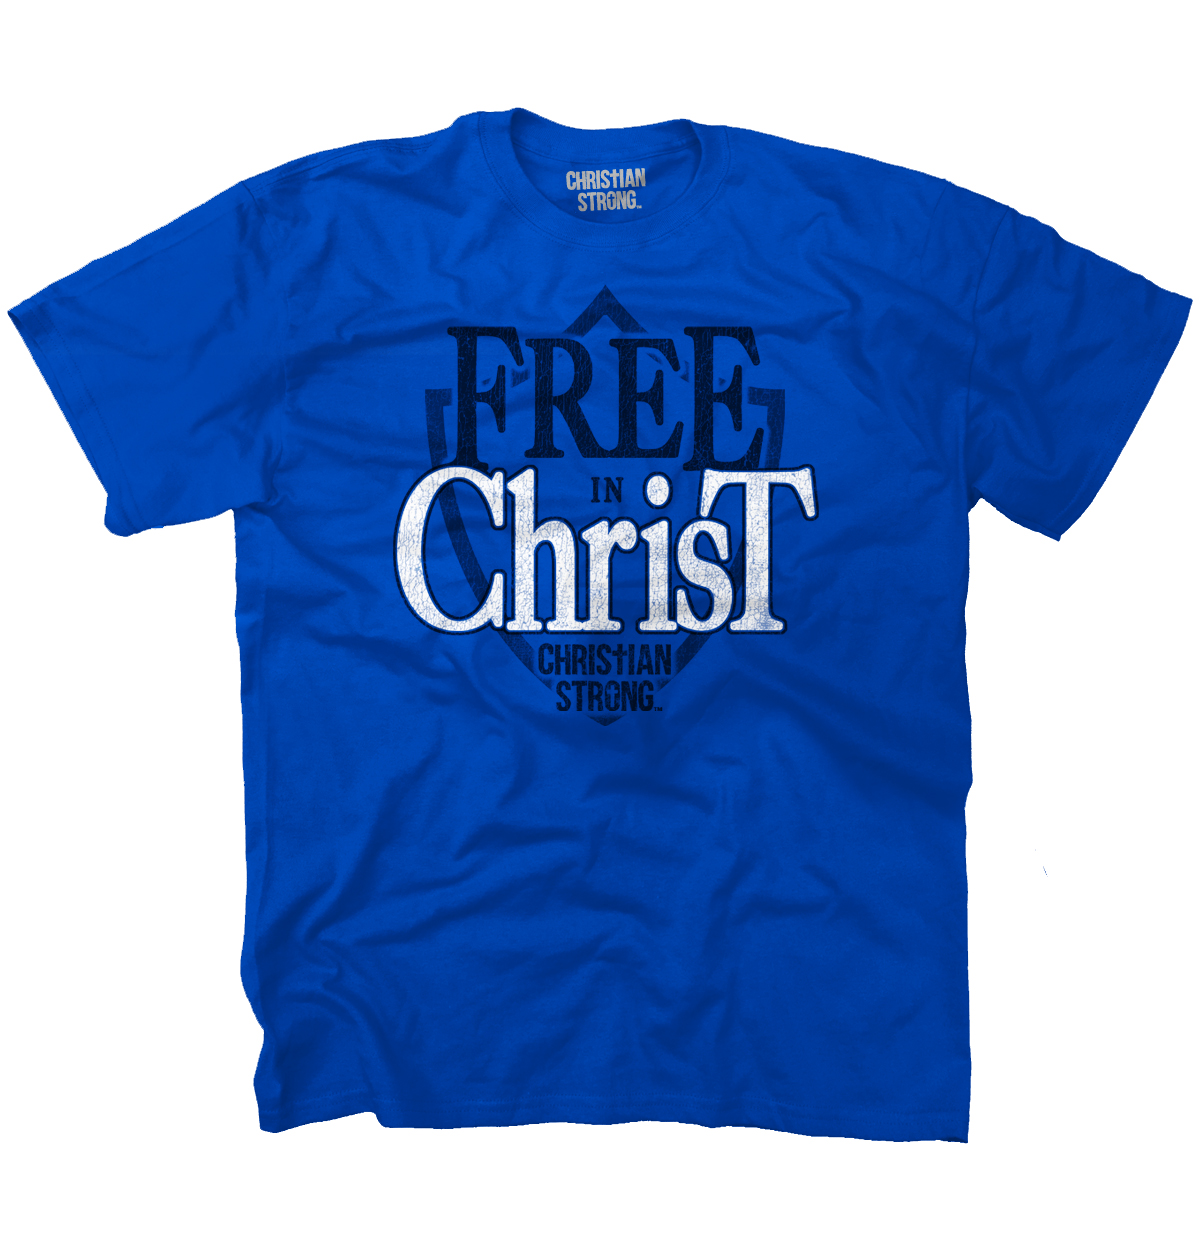 Christian T Shirt Free Christ Shield Jesus Christ Faith Religion Tee by Christian Strong